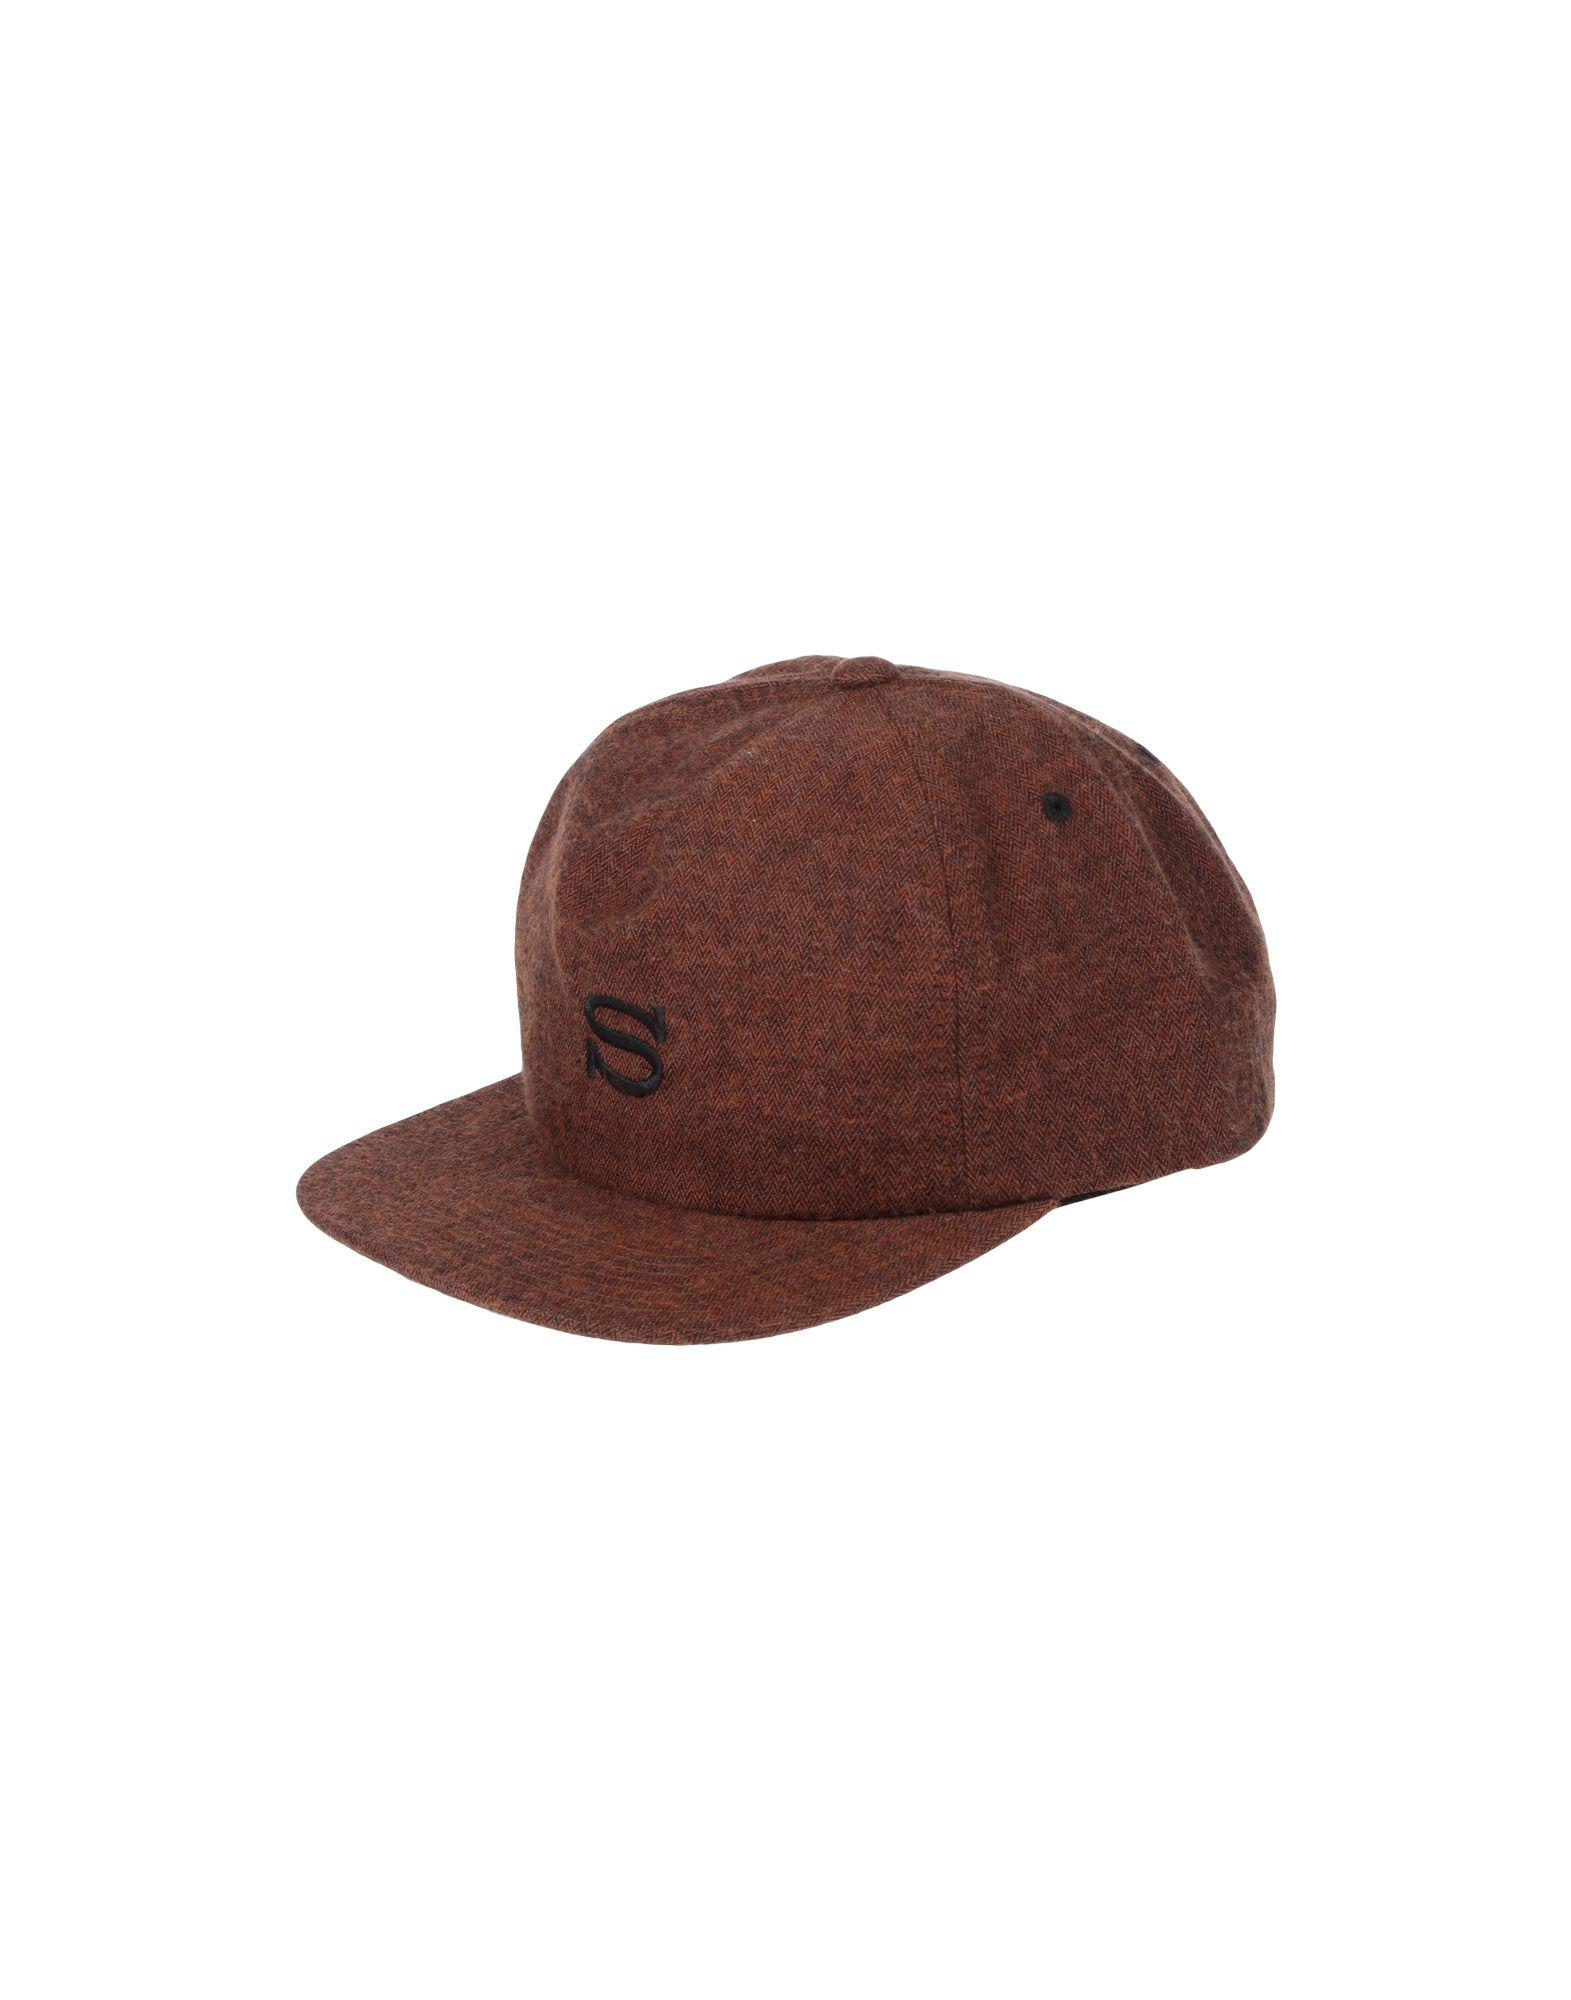 ab35be630287 Lyst - Stussy Hat in Brown for Men